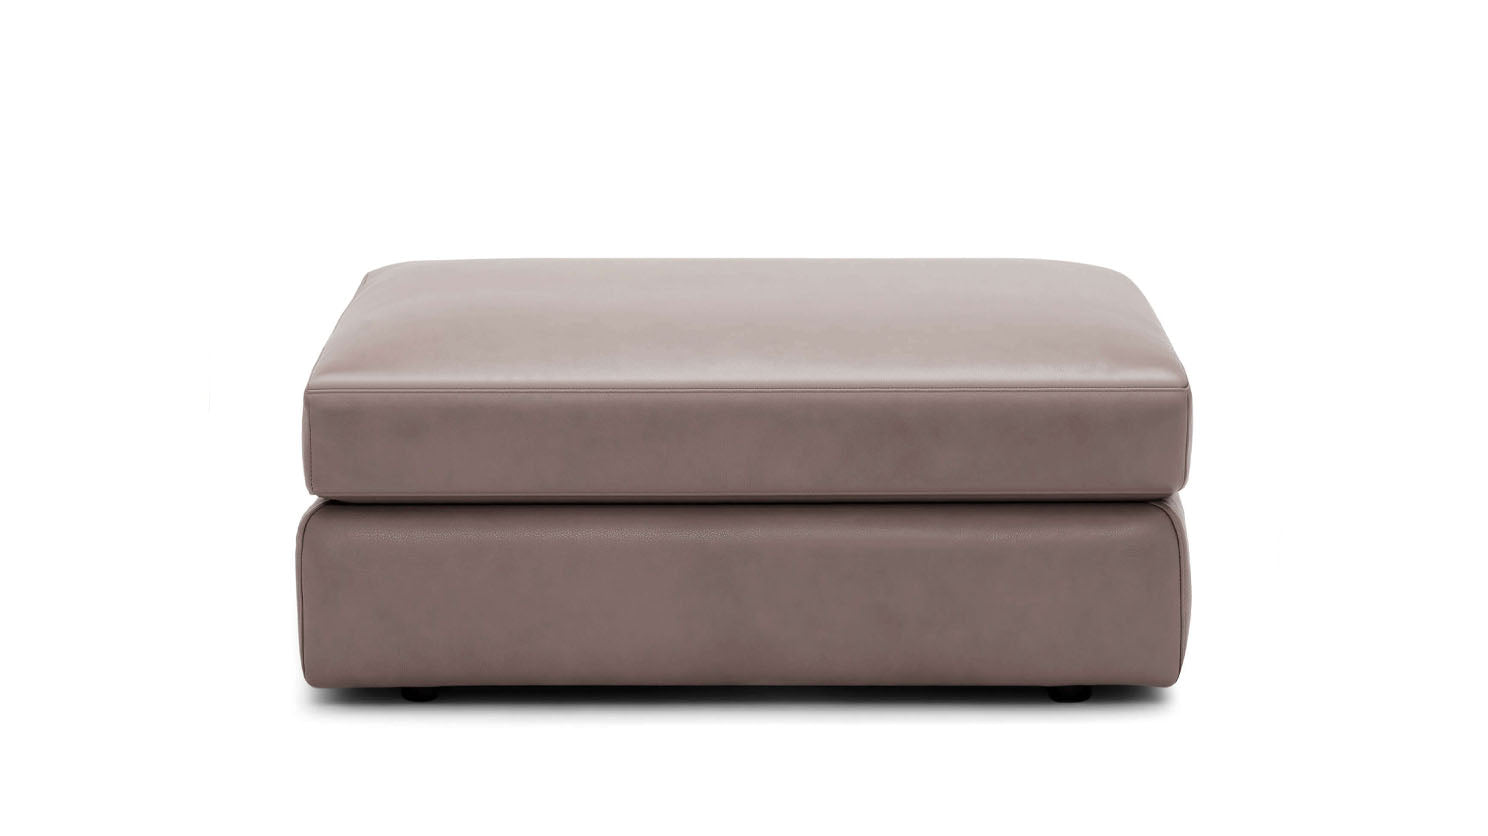 cello modular ottoman - leather